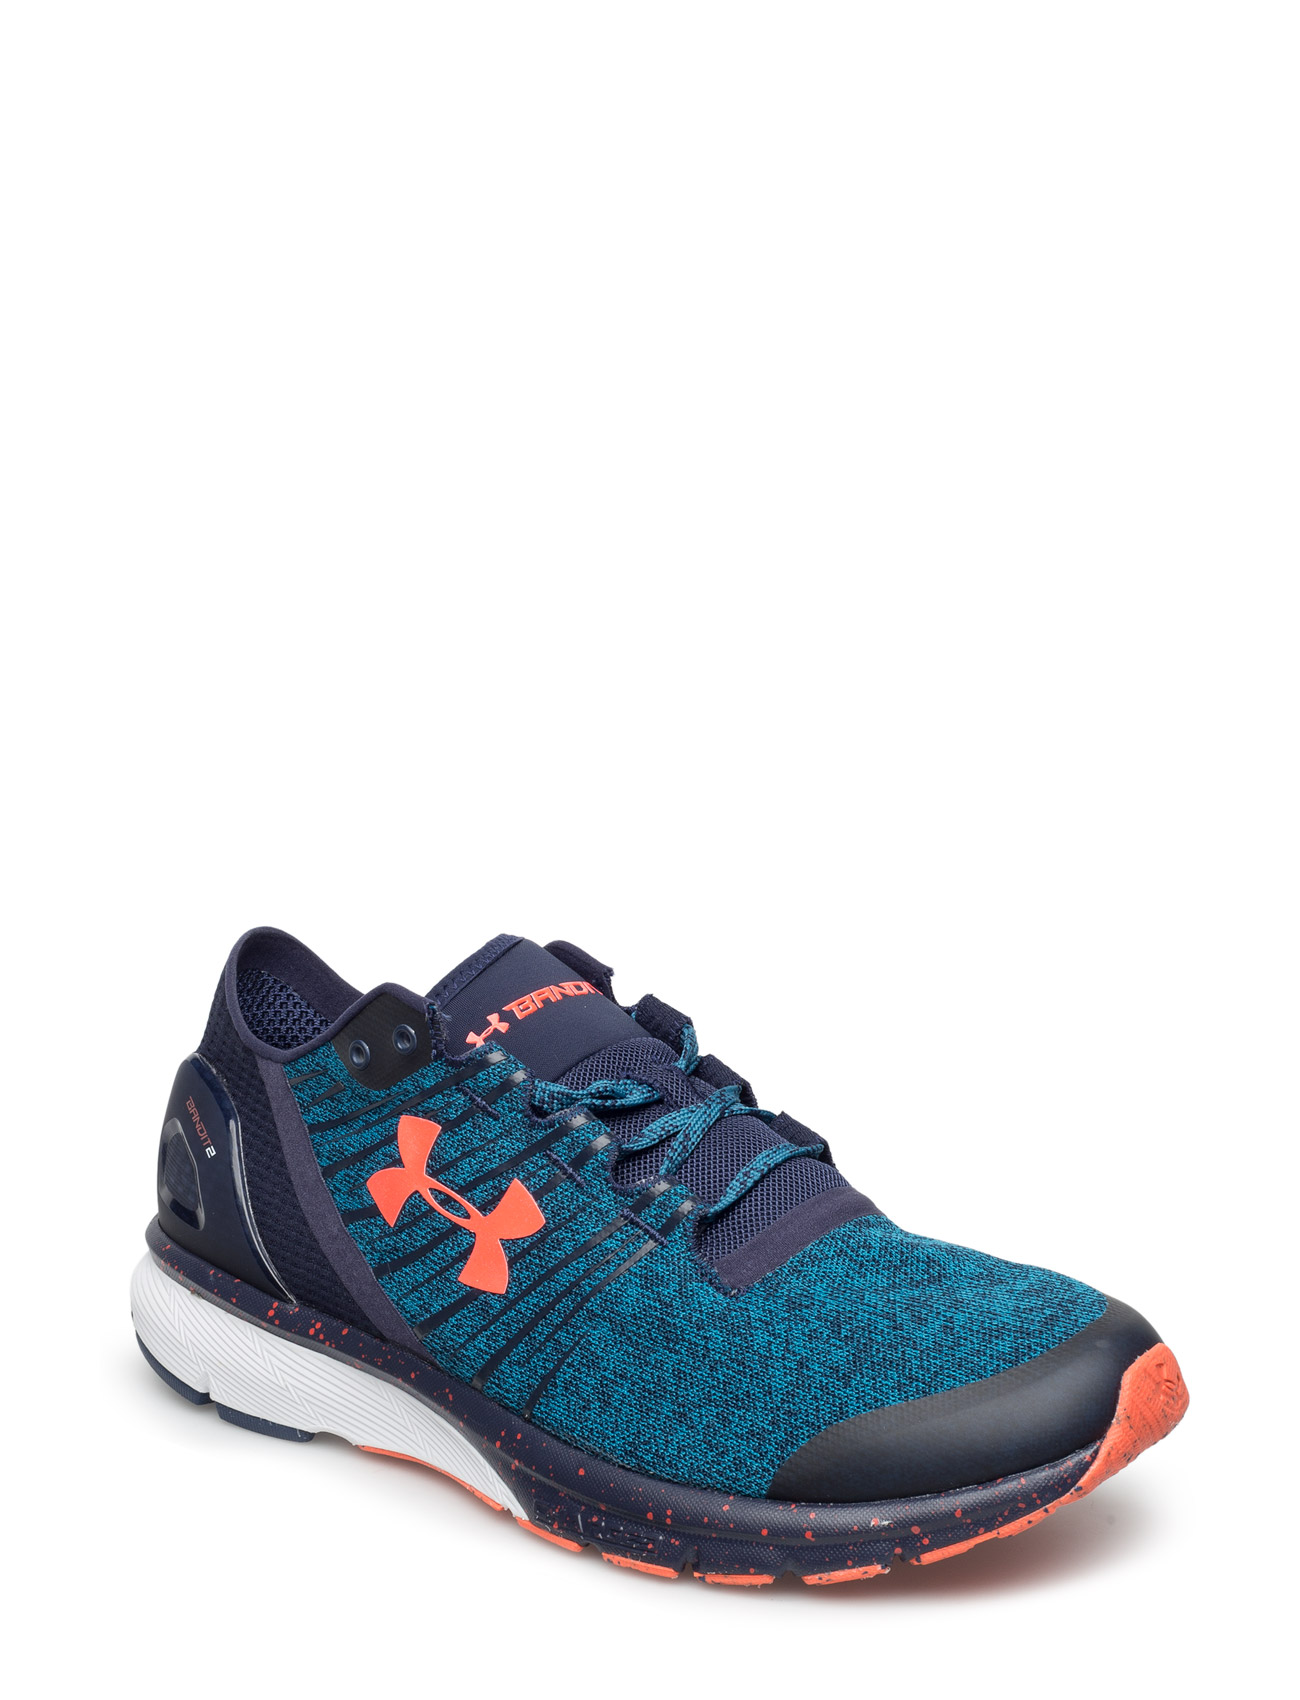 Ua Charged Bandit 2 Under Armour Sports sko til Herrer i